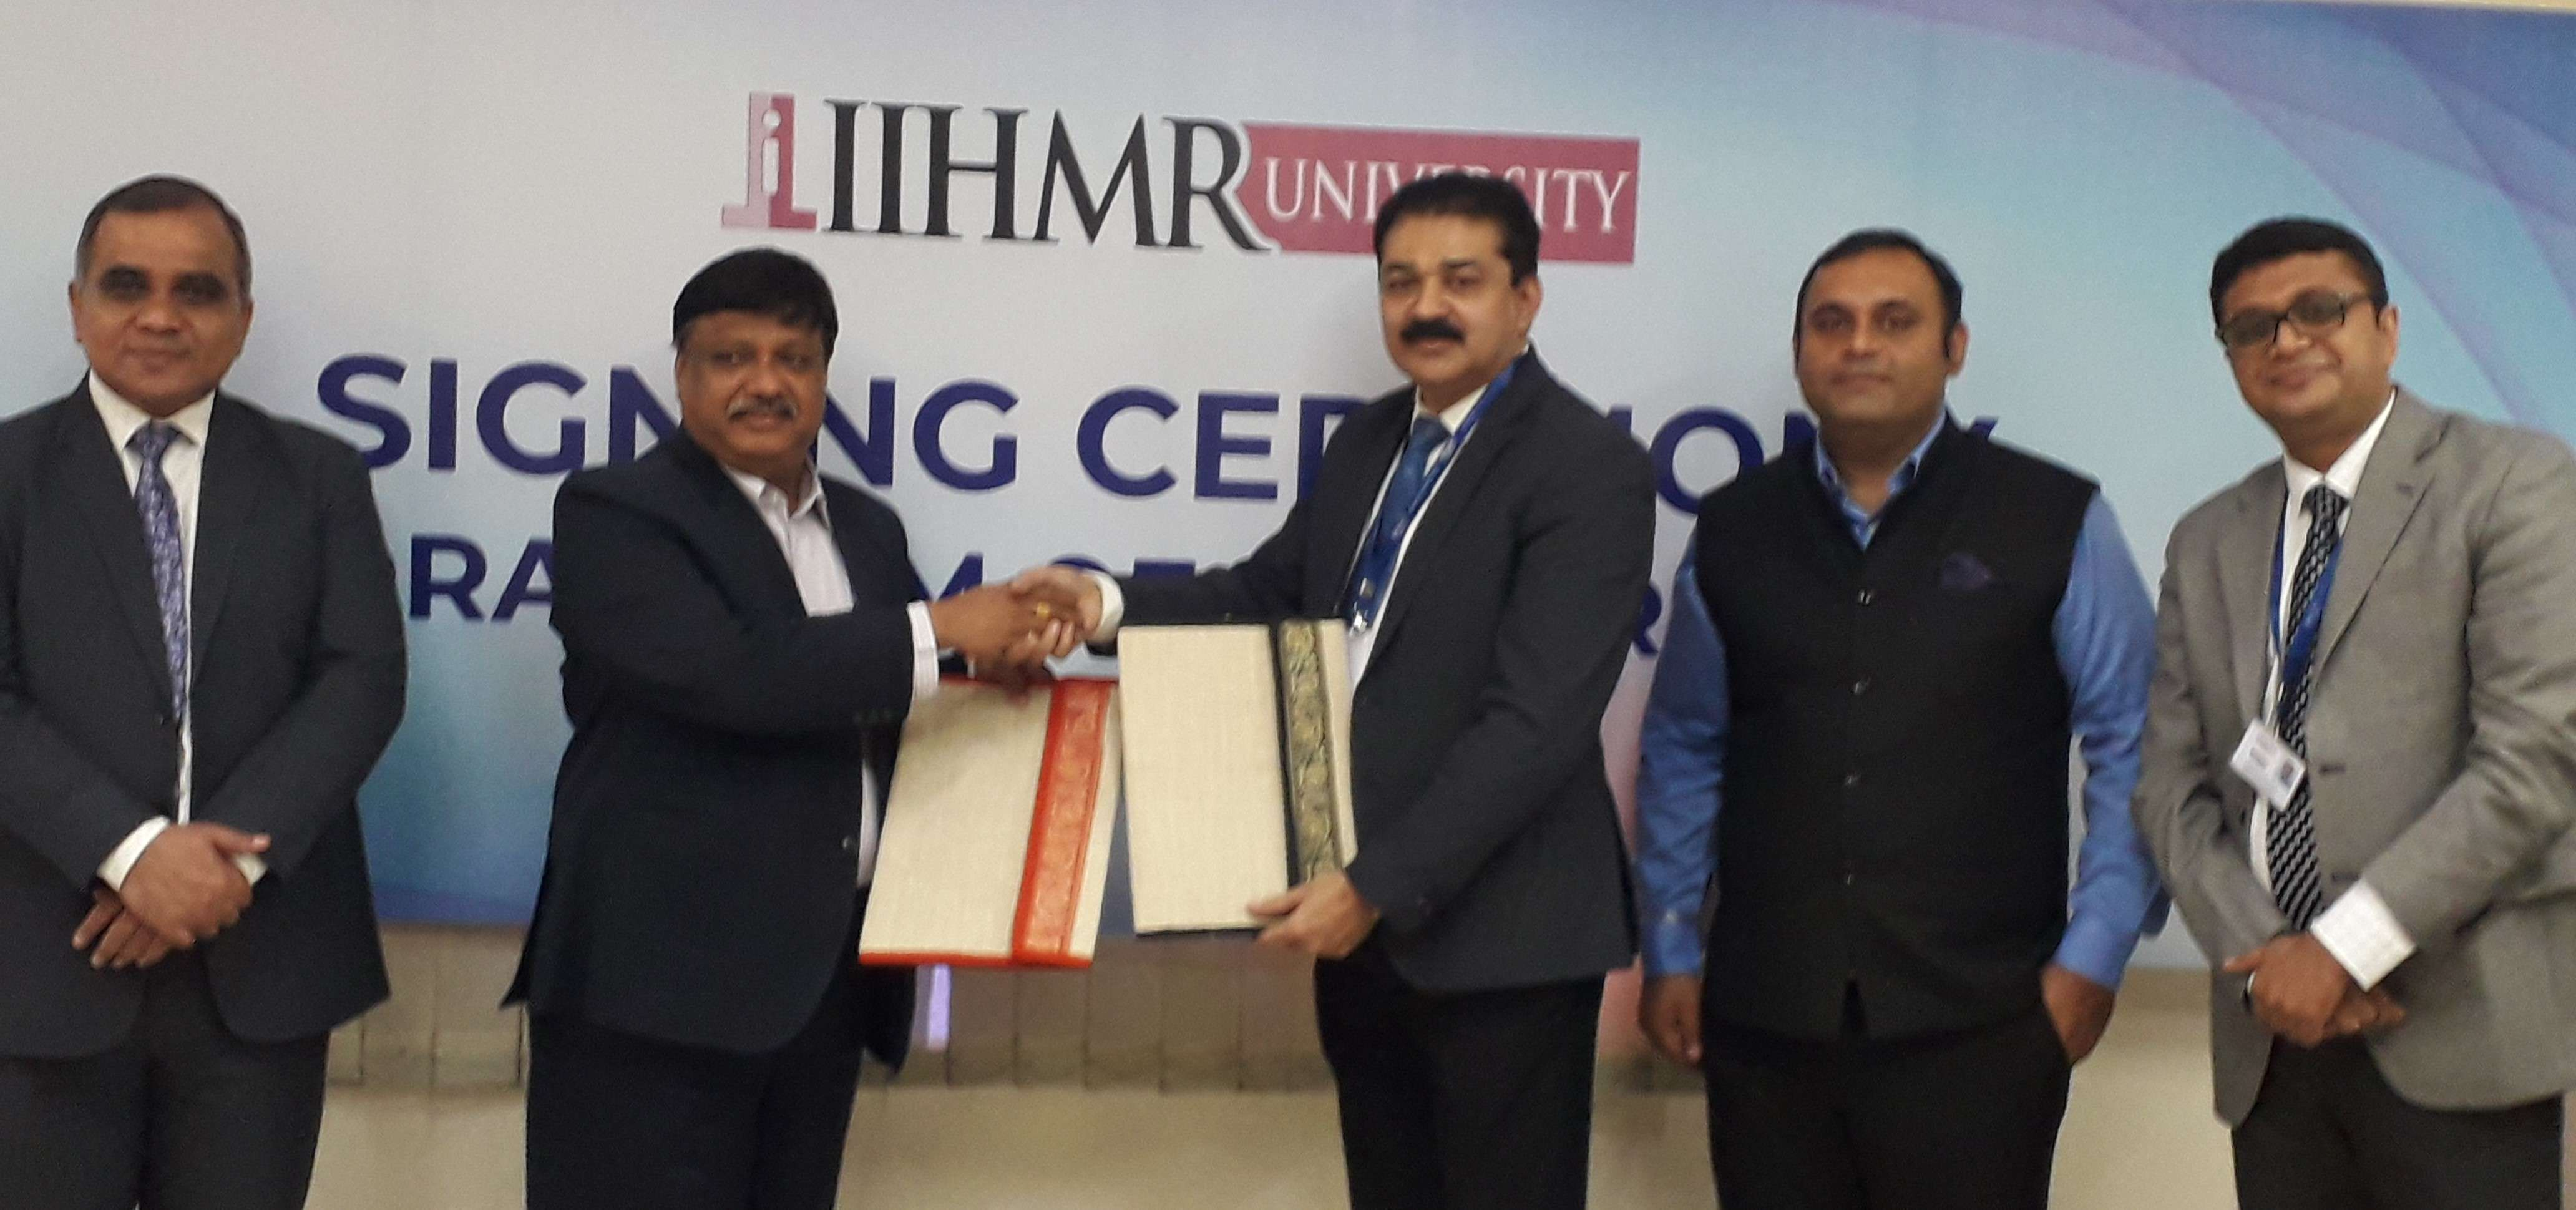 IIHMR University's Strategic Alliance with Shalby Limited